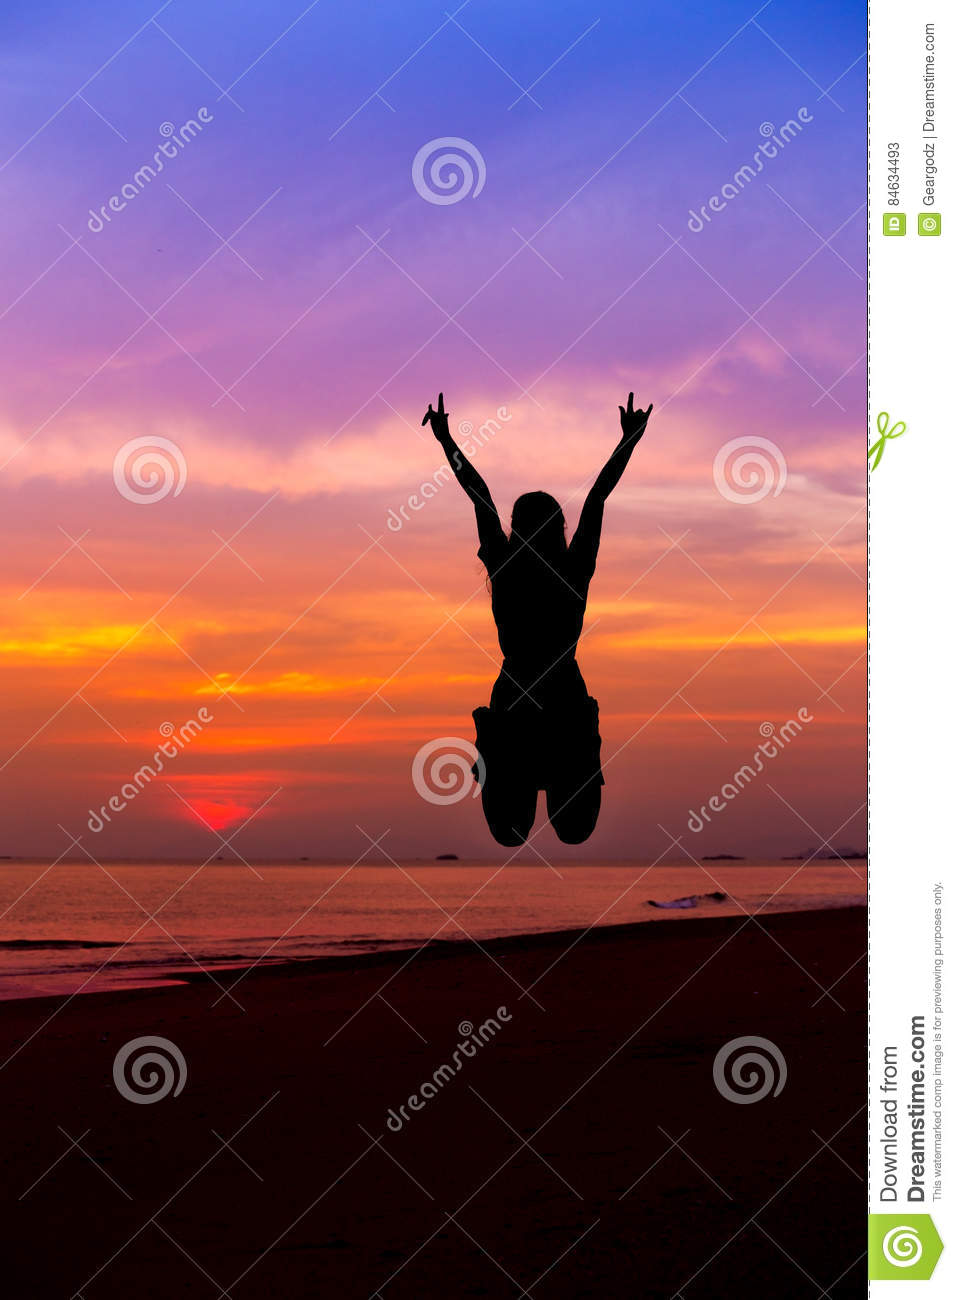 Silhouette of woman jumping with hands up and showing I LOVE YOU sign on the sea beach